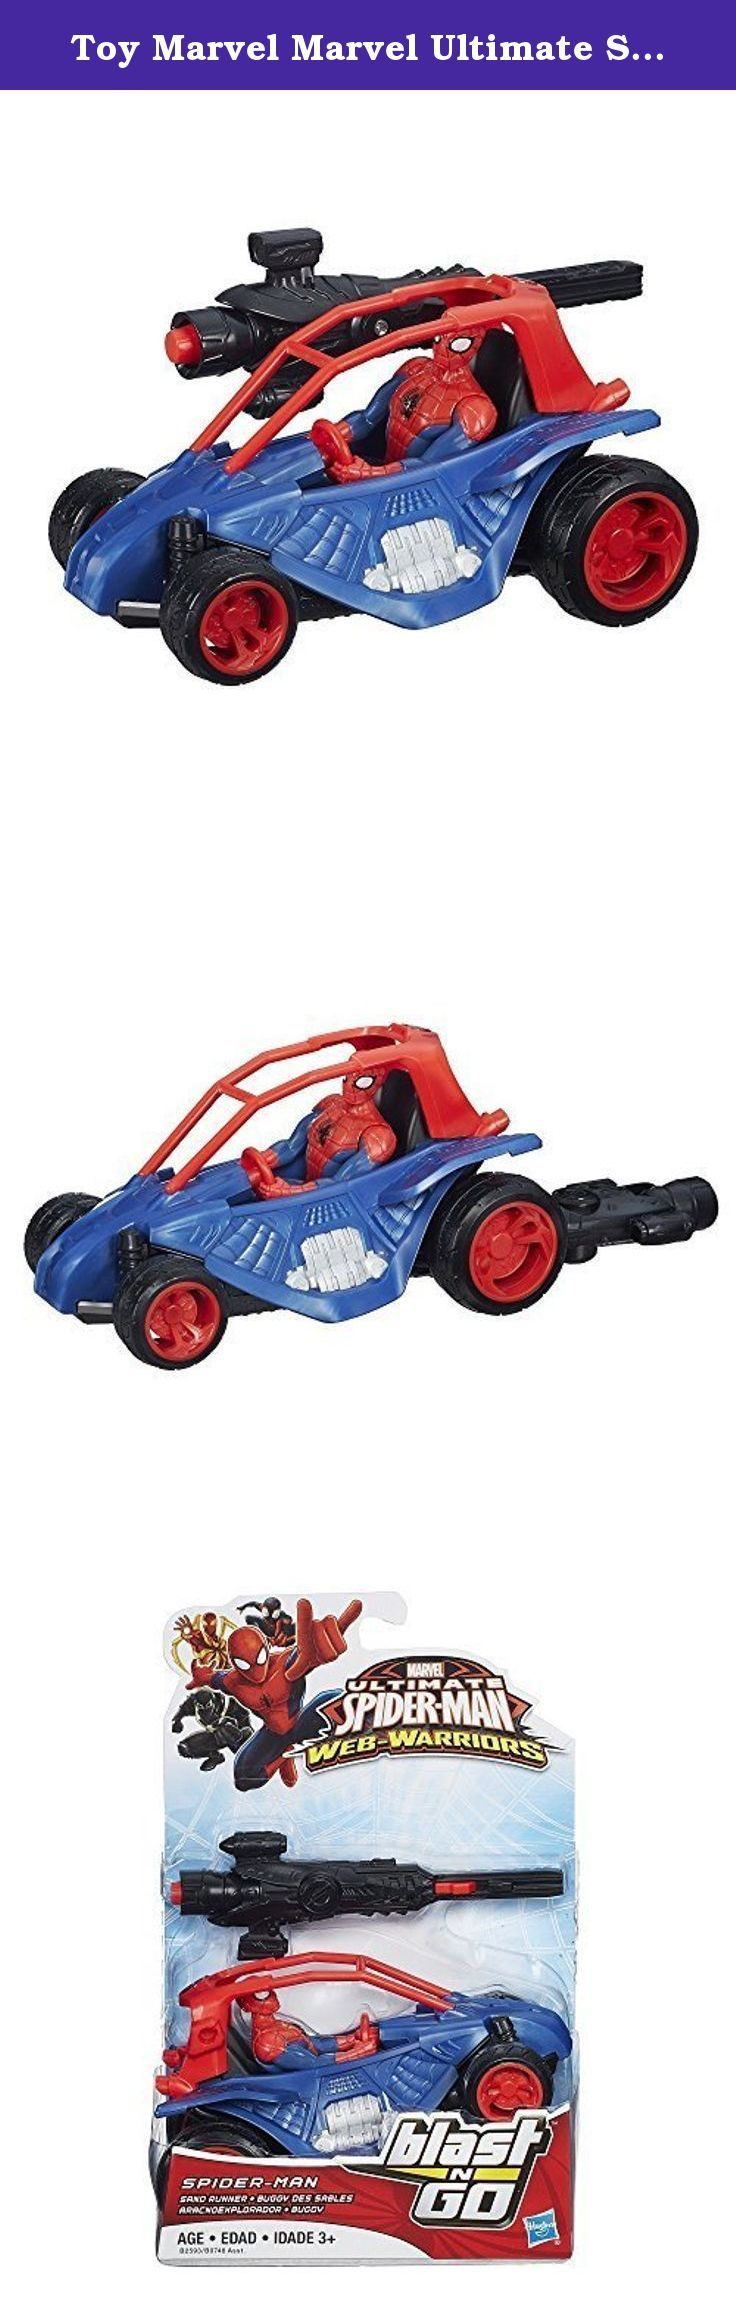 Toy Marvel Marvel Ultimate Spider-Man Spider-Man Web Warriors Blast 'N Go Racers Sand Runner Hobby figure toy model [parallel import goods]. It's shipped off from Japan.